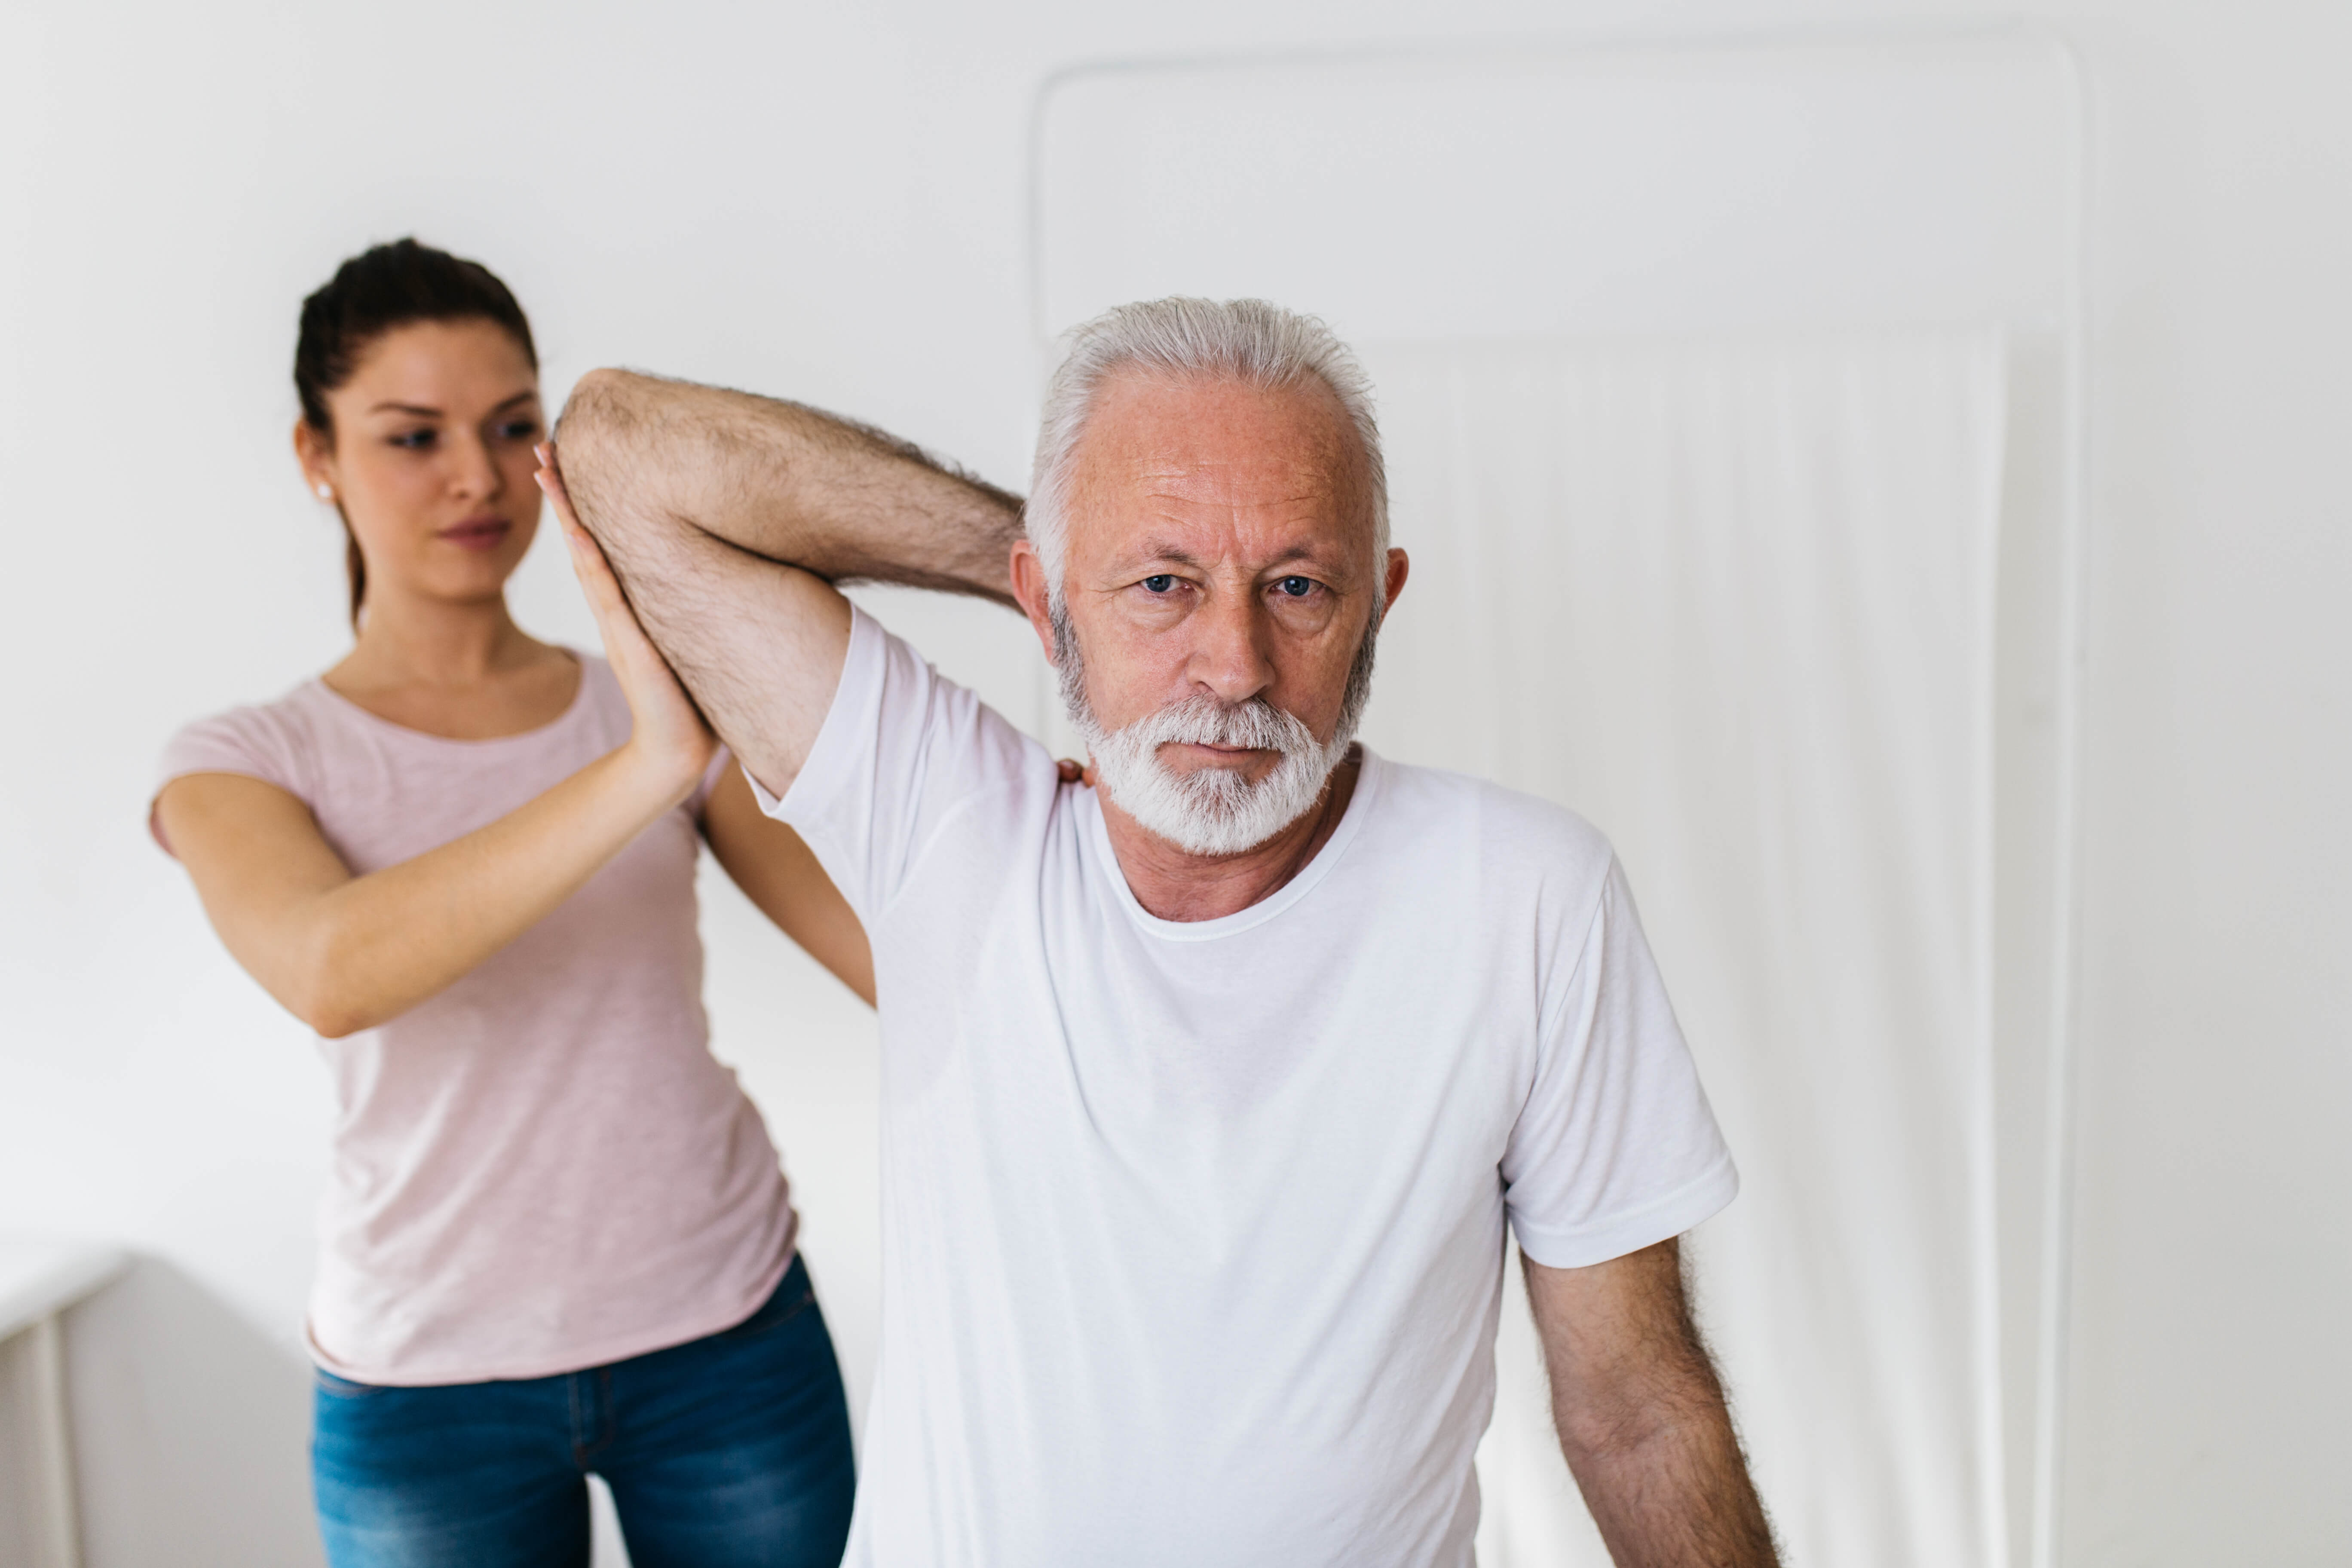 Physical Therapist for Post-Op Rehab in Grandville